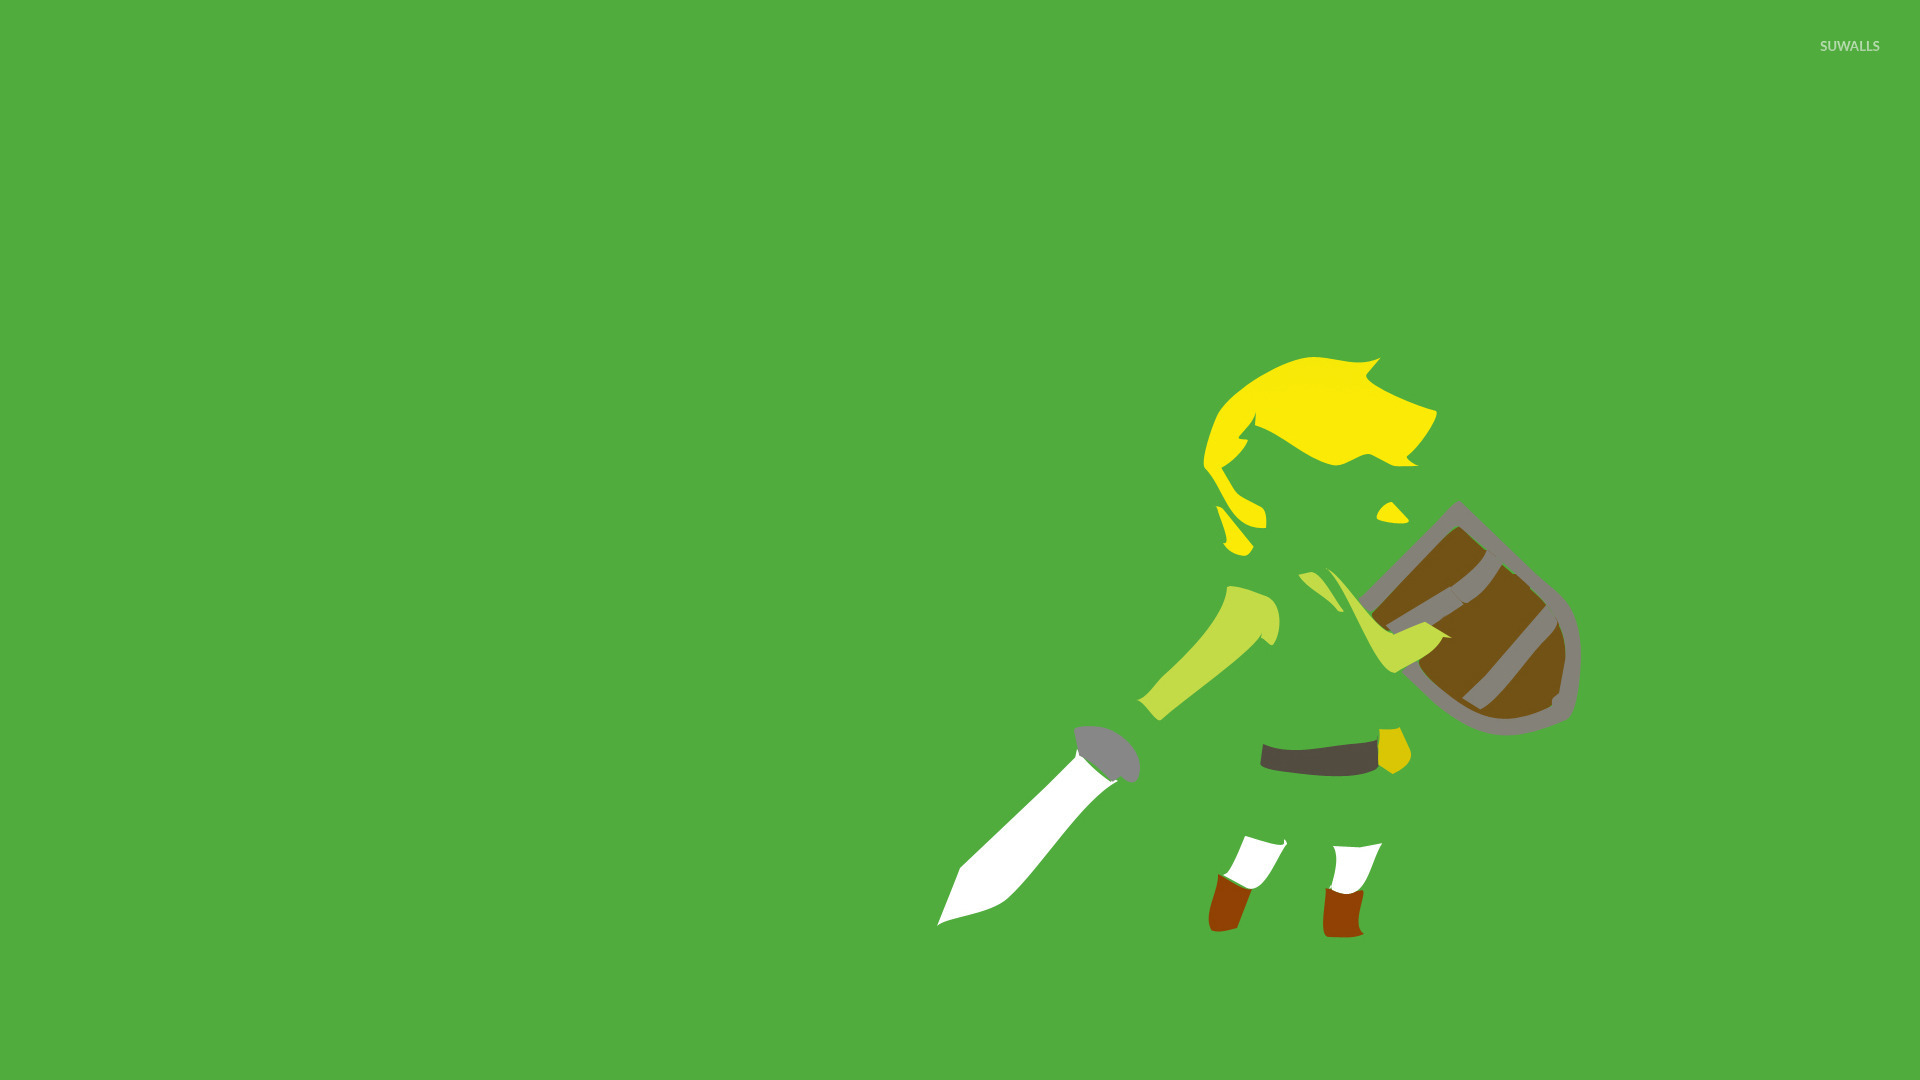 Link   The Legend of Zelda wallpaper   Game wallpapers   23323 1920x1080